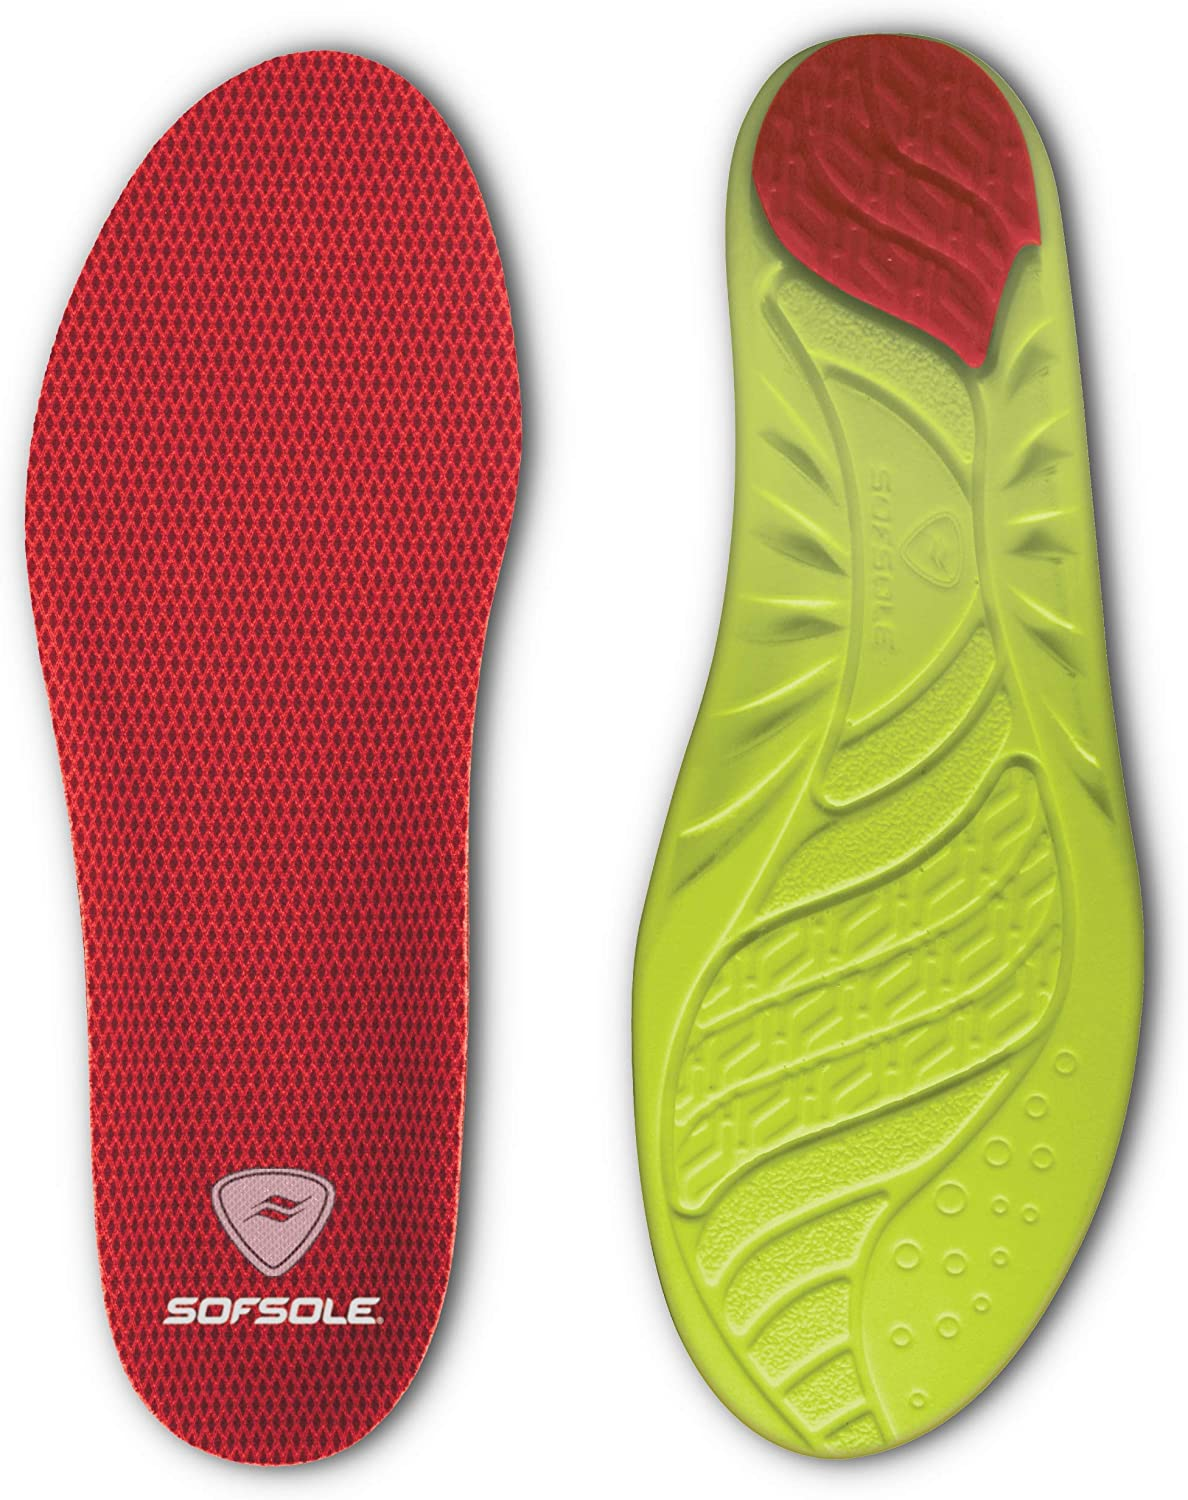 Sof Sole Insoles Women's High Arch Performance Full-Length Foam Shoe Insert: Shoes